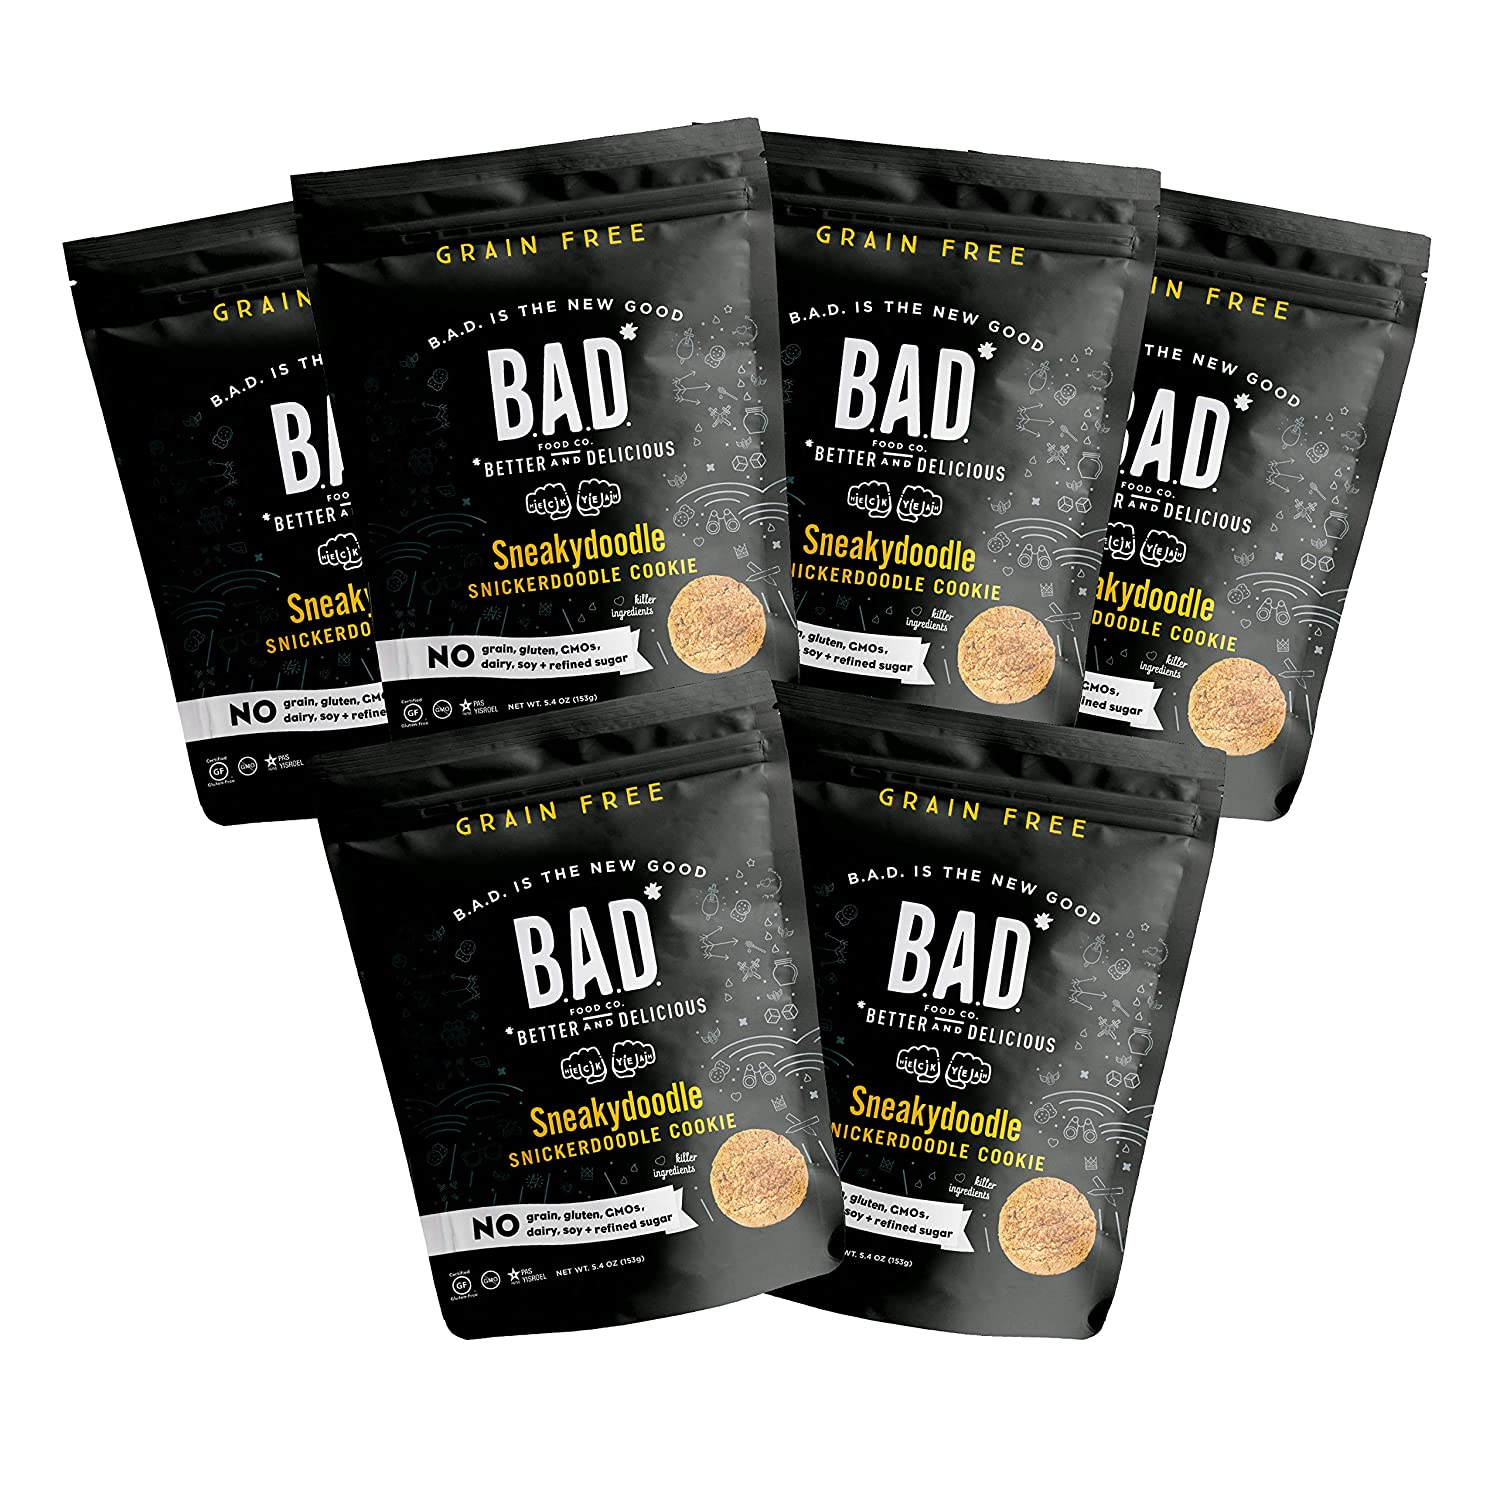 B.A.D. FOOD CO Bombing new work Sneakydoodle - – Cookies 5.4oz 6 Sales results No. 1 Snickerdoodle